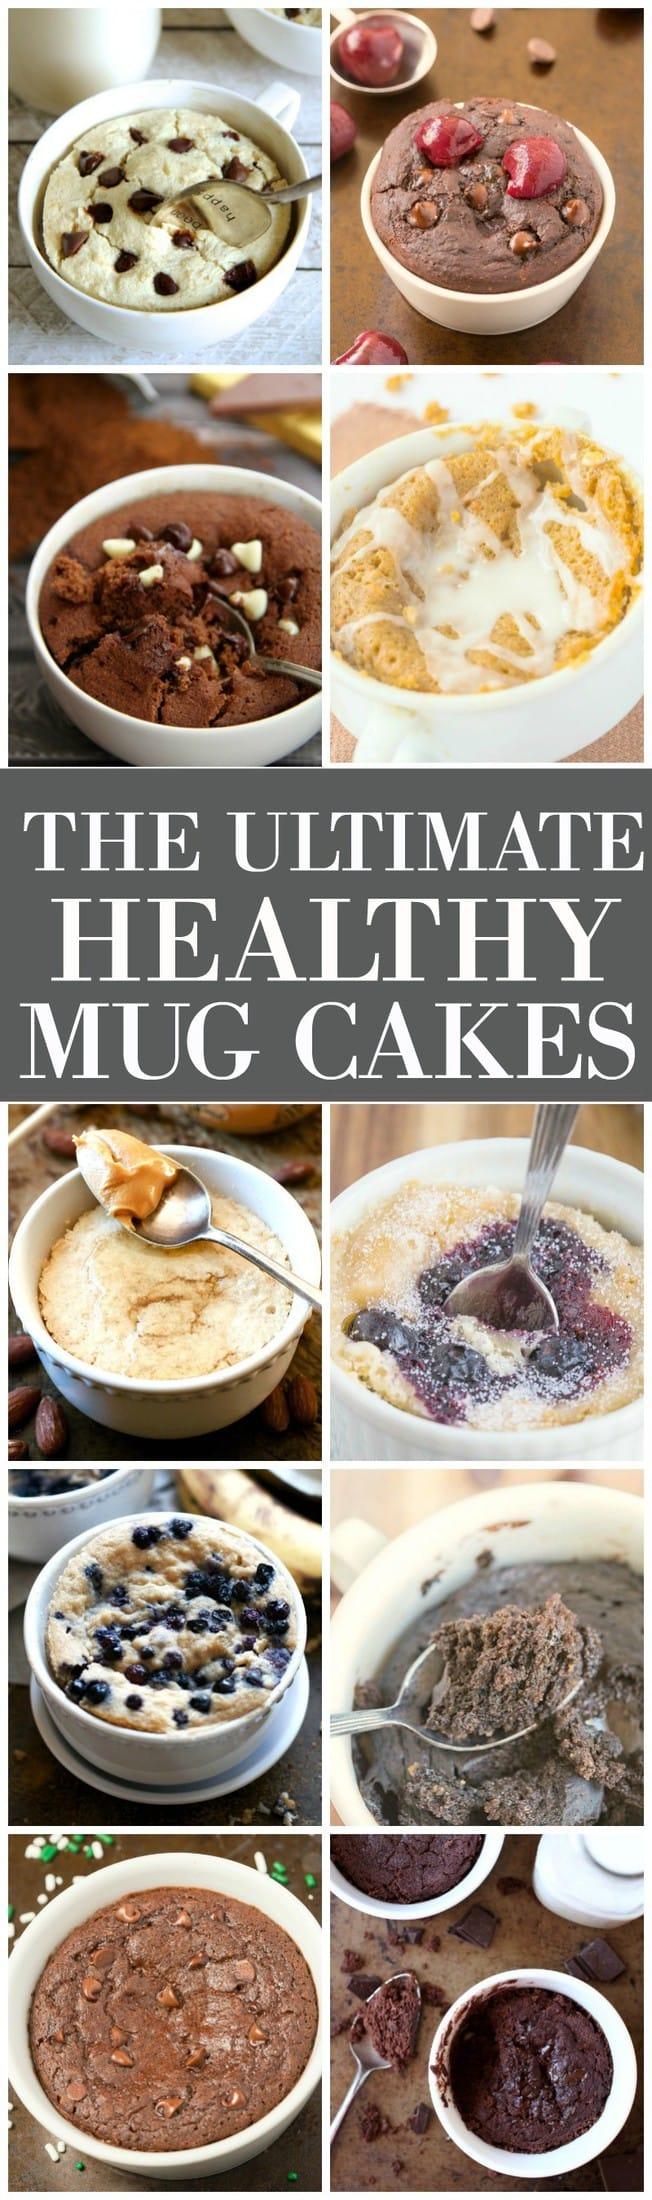 Oatmeal Cookie Dough Mug Cake Via Running With Spoons